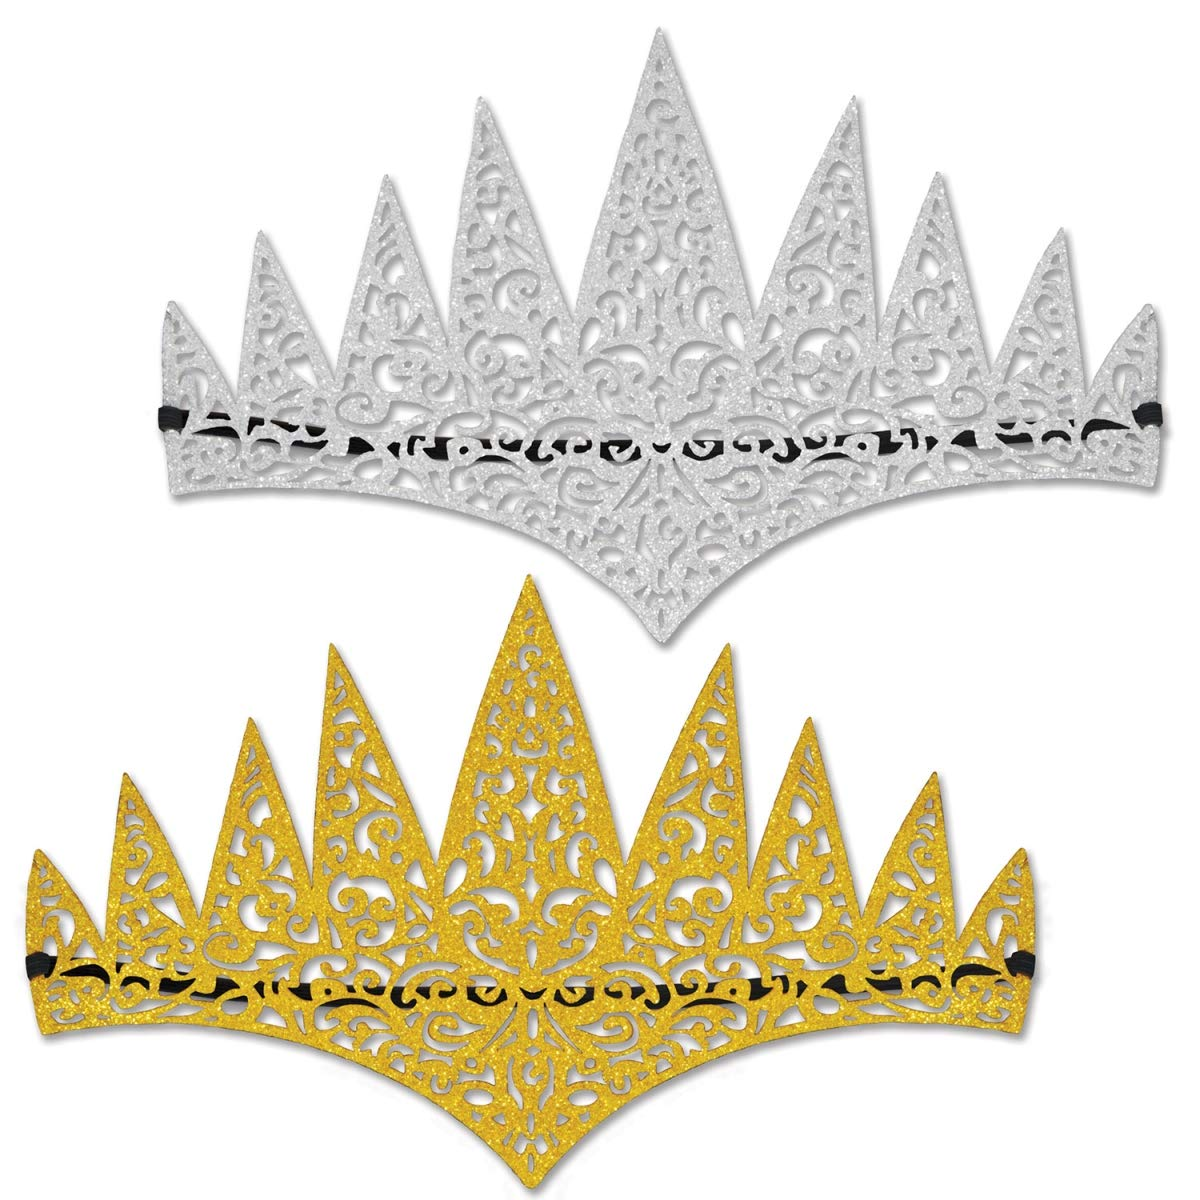 Beistle 60665 Glittered Laser Cut Tiaras - Pack of 12 by Beistle (Image #1)